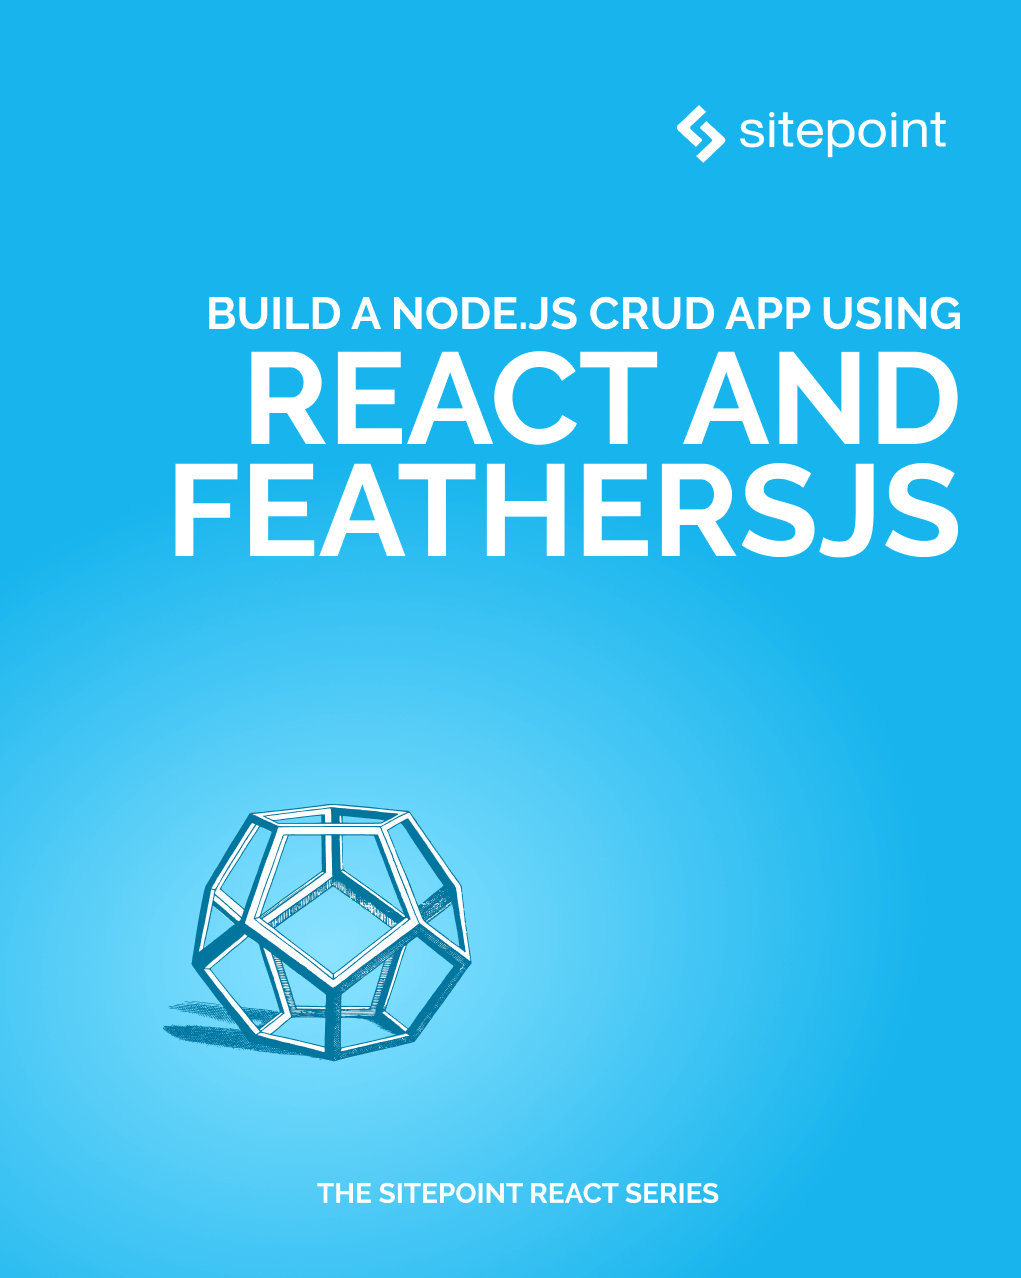 Build a Node.js CRUD App Using React and Feathers